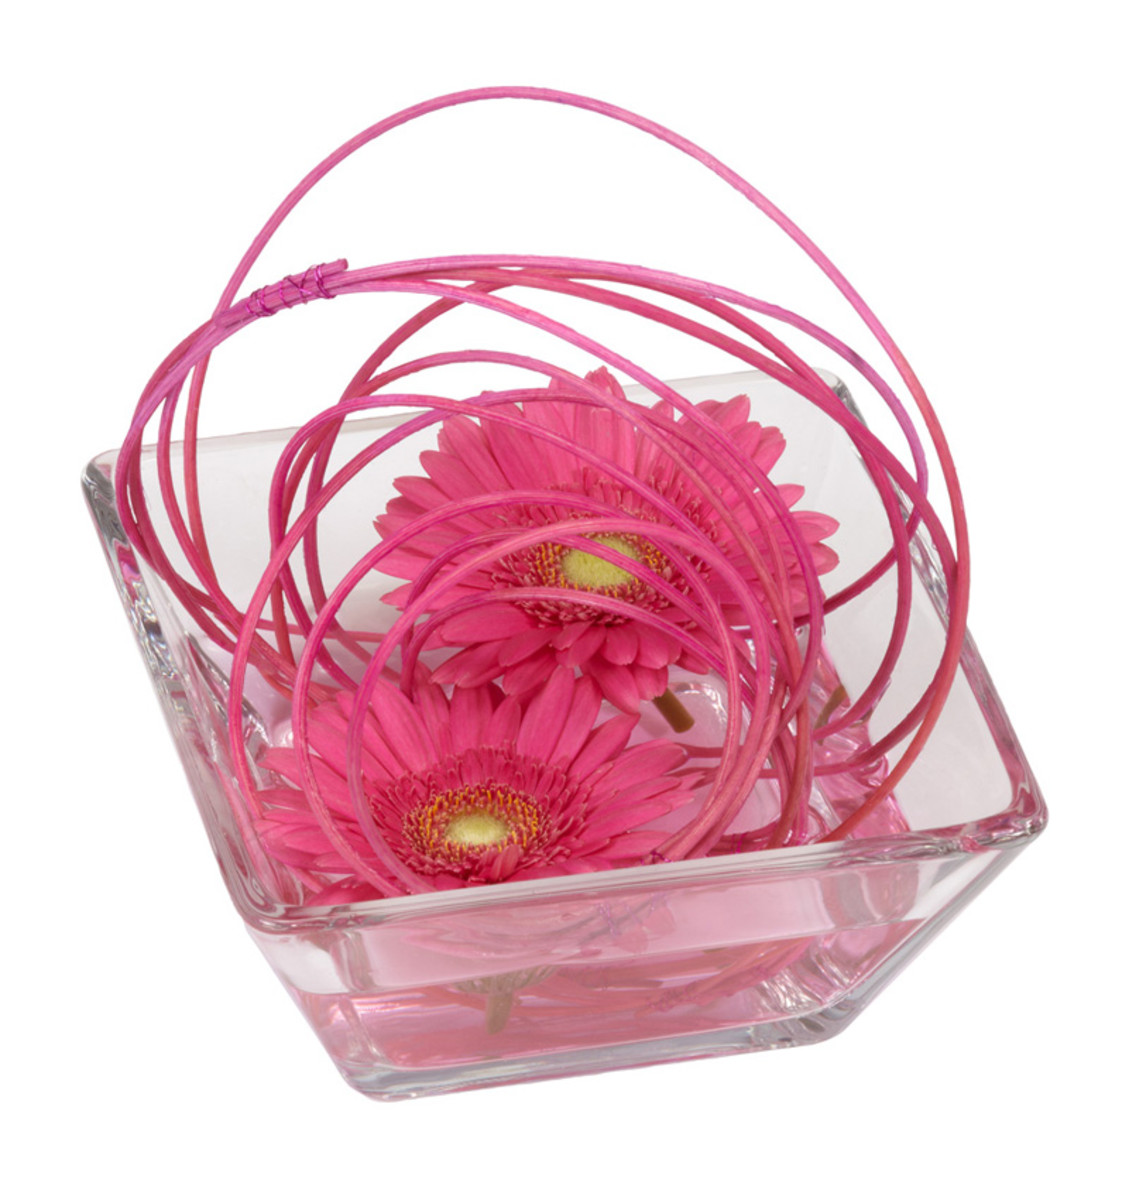 Valentine's Day Centerpieces You Can Make Yourself - Add a Flower Arrangement to Your Table.